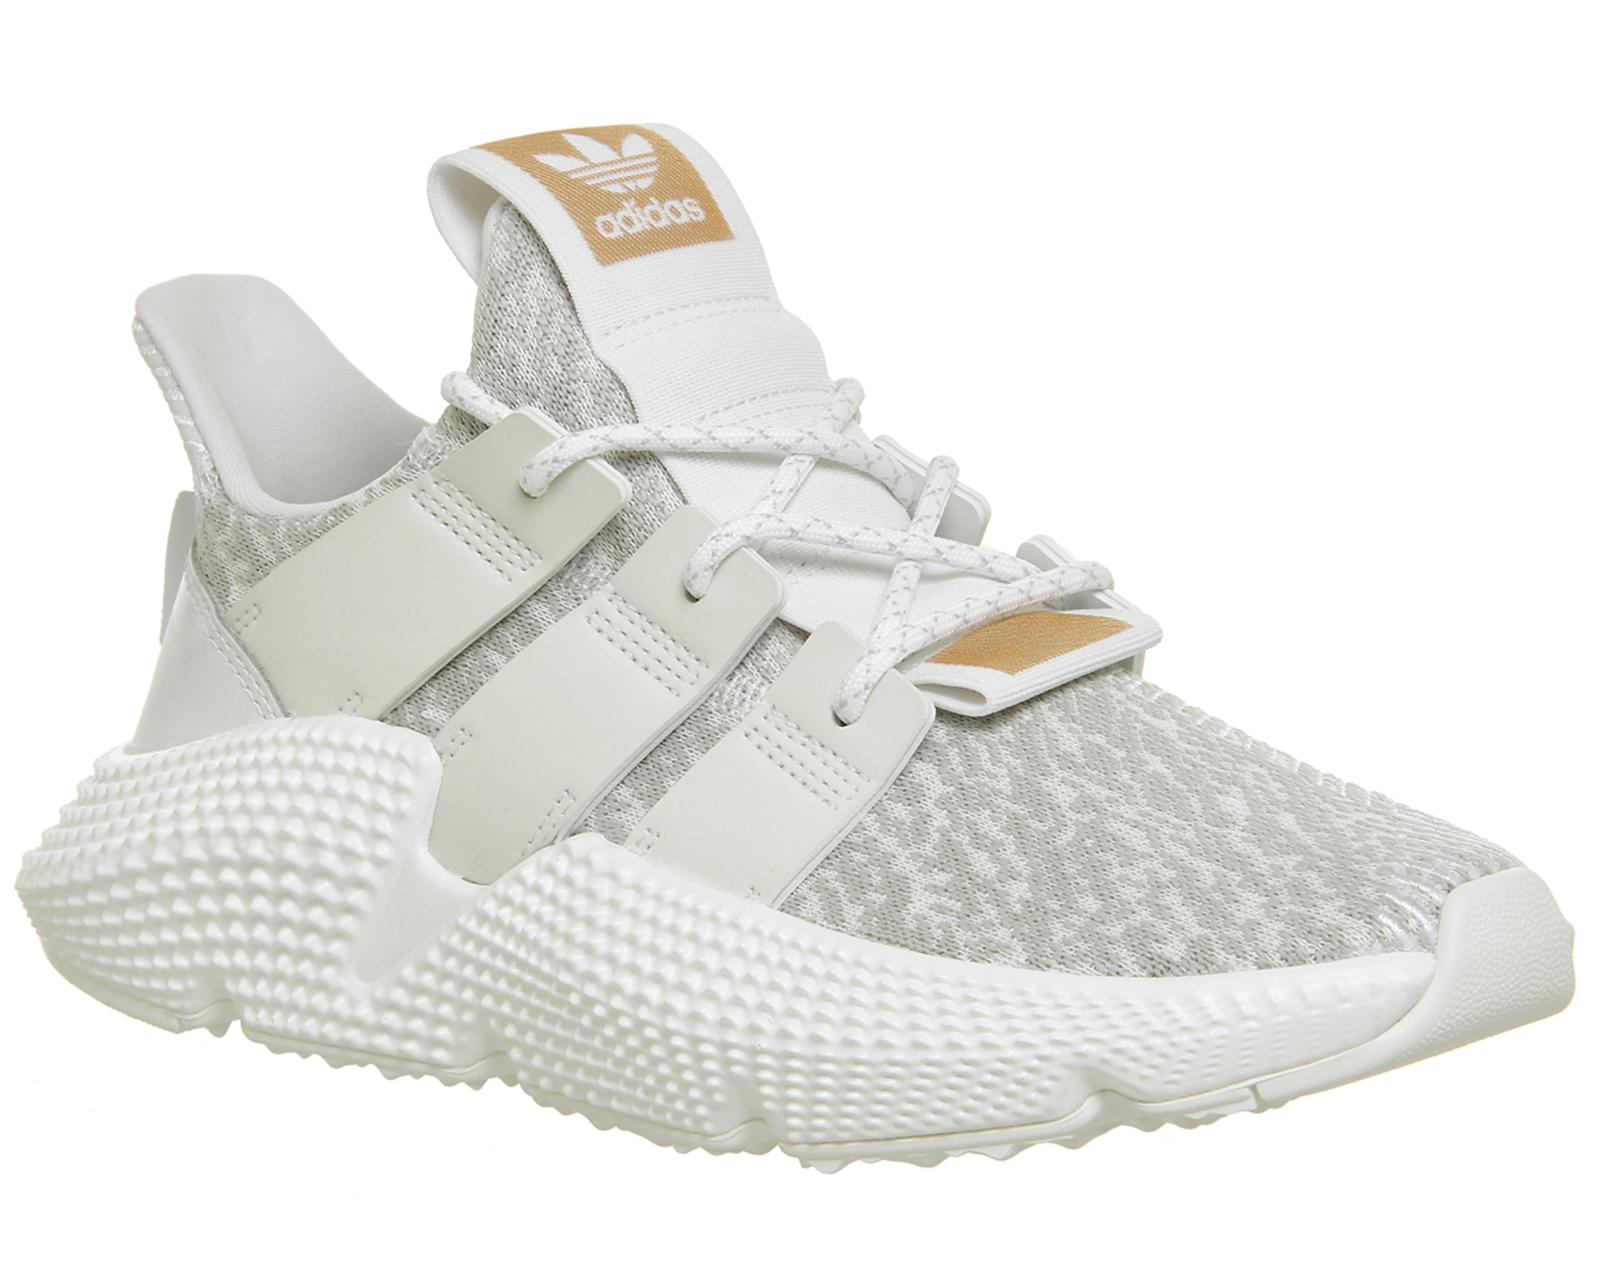 Lyst - adidas Prophere Trainers in White 0b1befde0